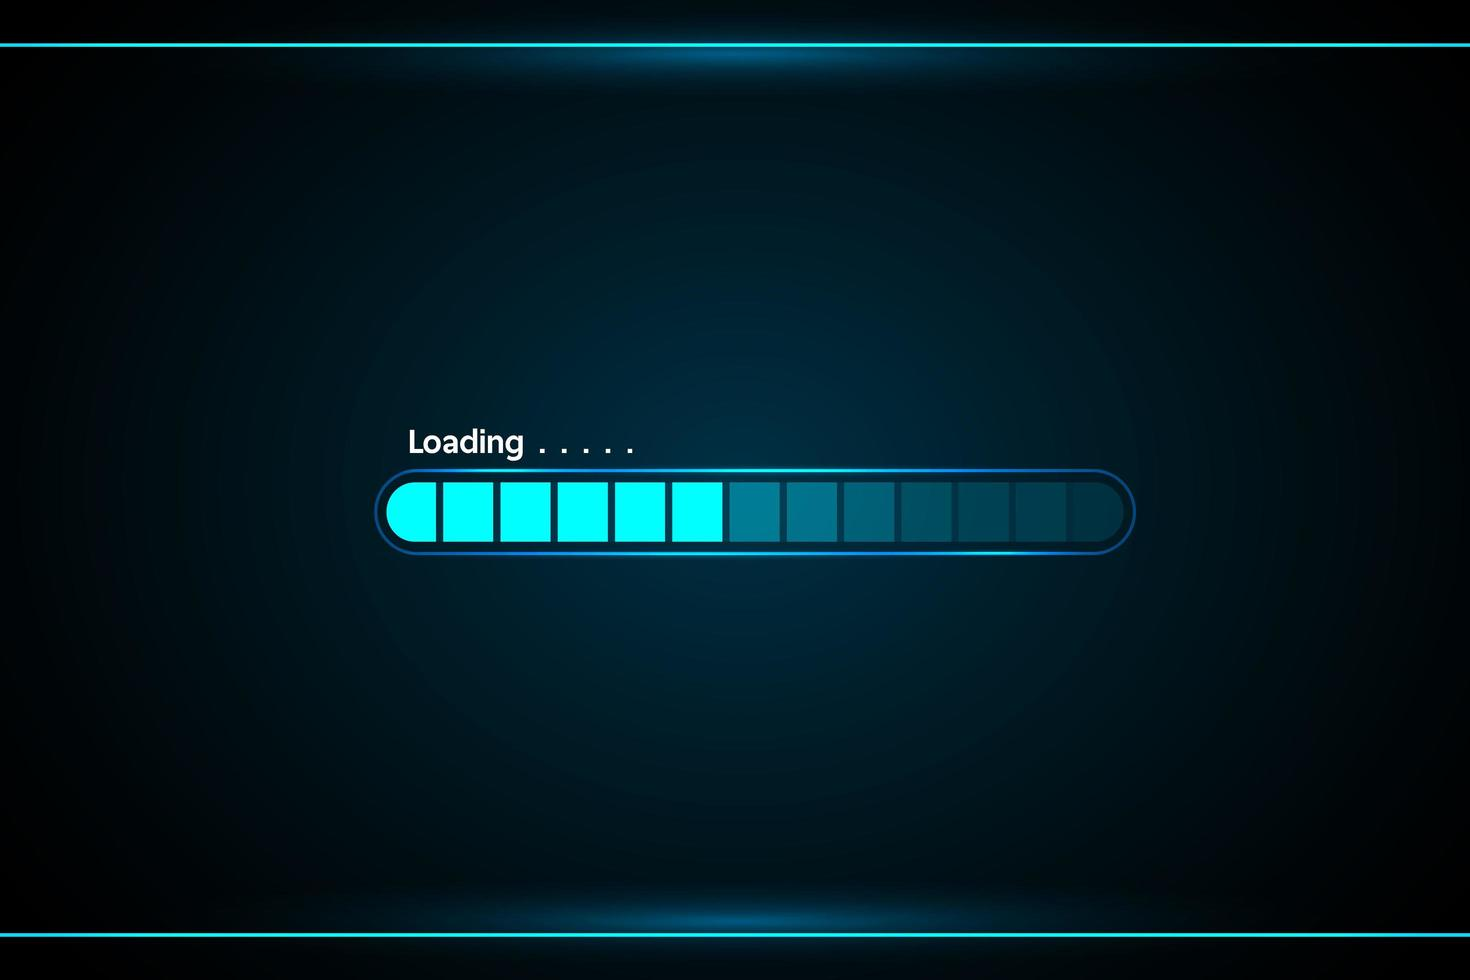 Loading Window Interface for HUD vector